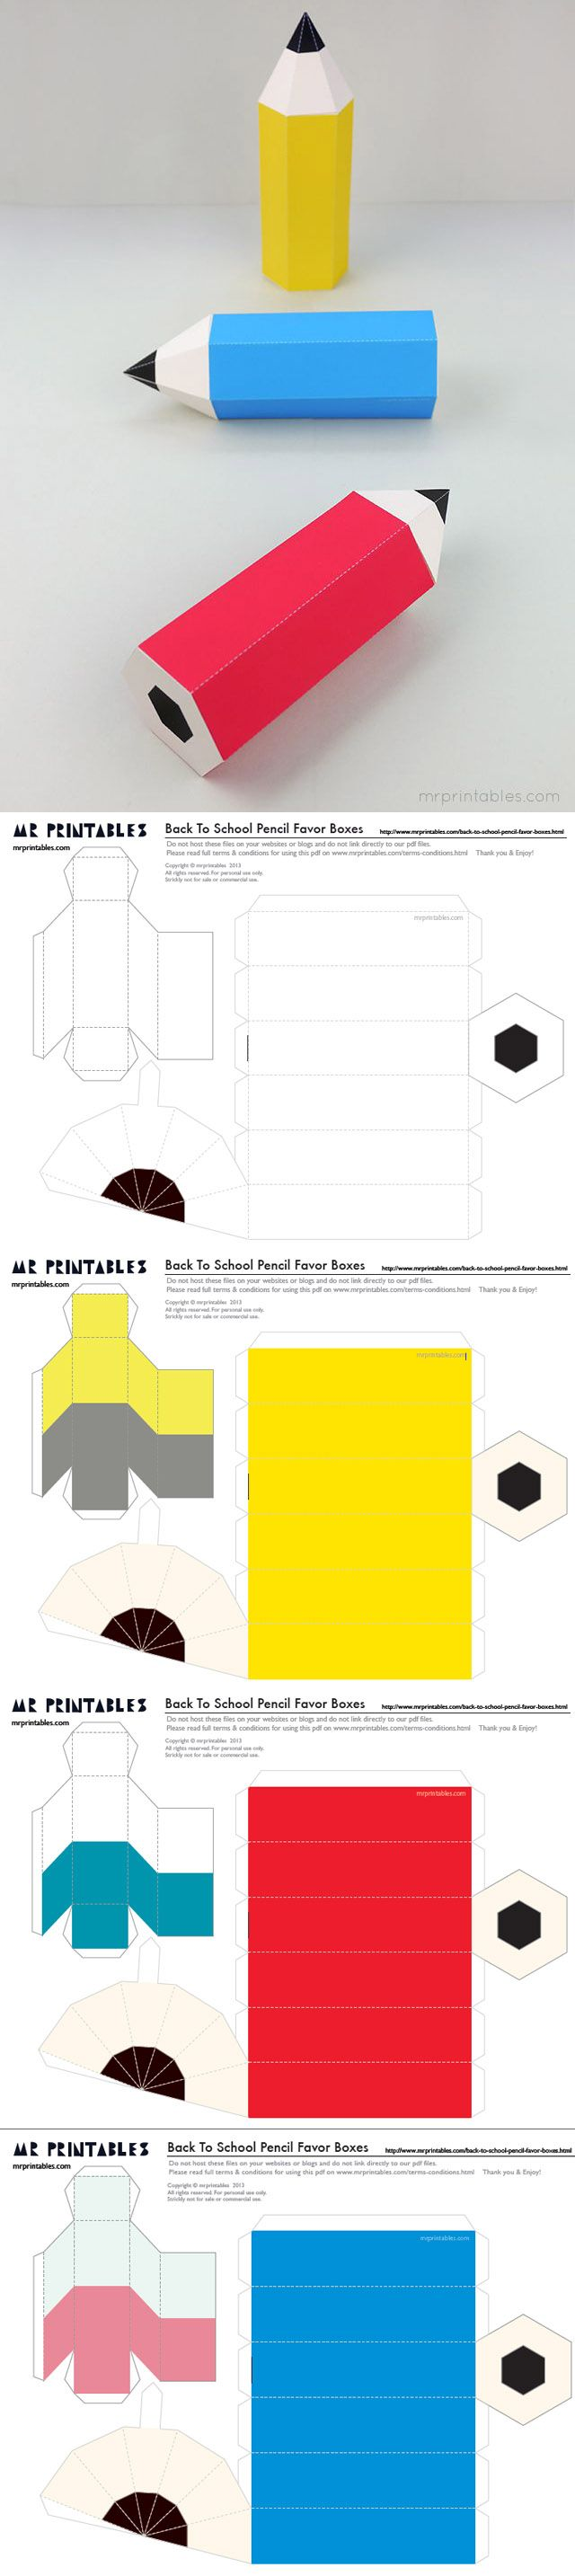 Pencil Box. Templates En grand pour déco chambre